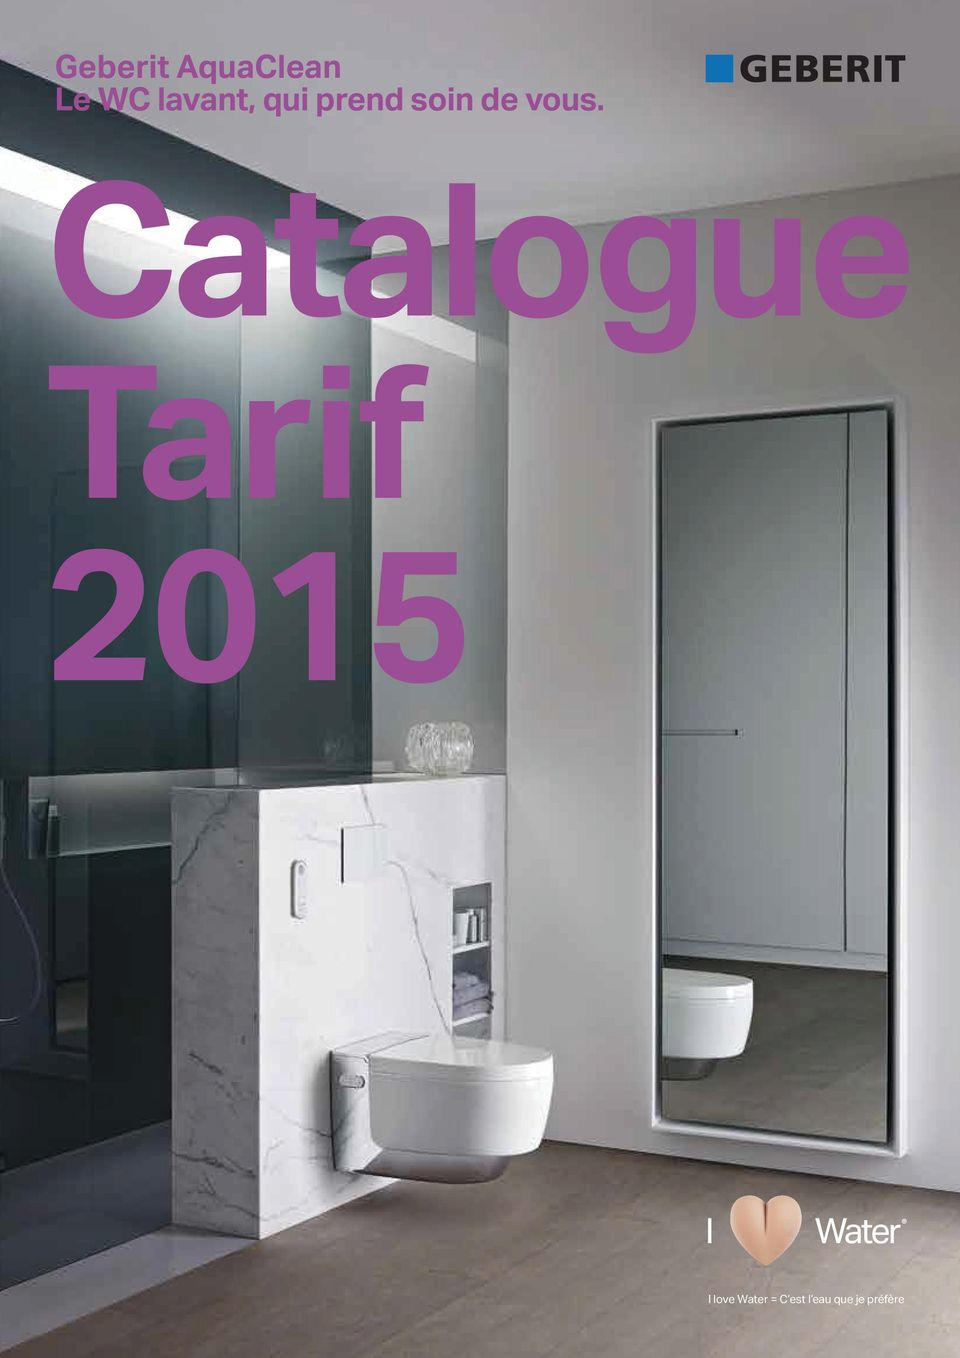 geberit aquaclean le wc lavant qui prend soin de vous catalogue tarif pdf. Black Bedroom Furniture Sets. Home Design Ideas